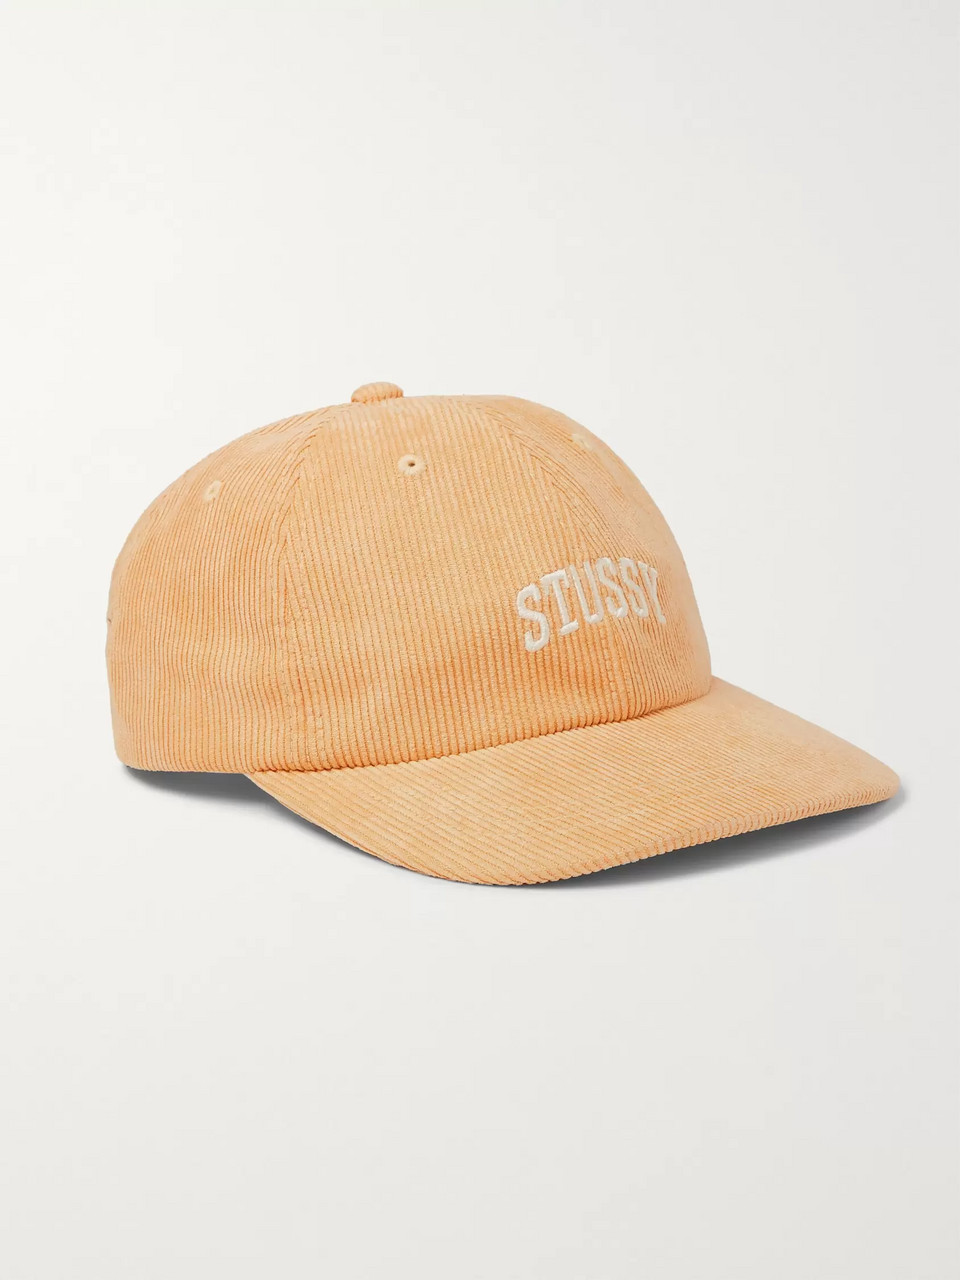 Stüssy Logo-Embroidered Corduroy Baseball Cap